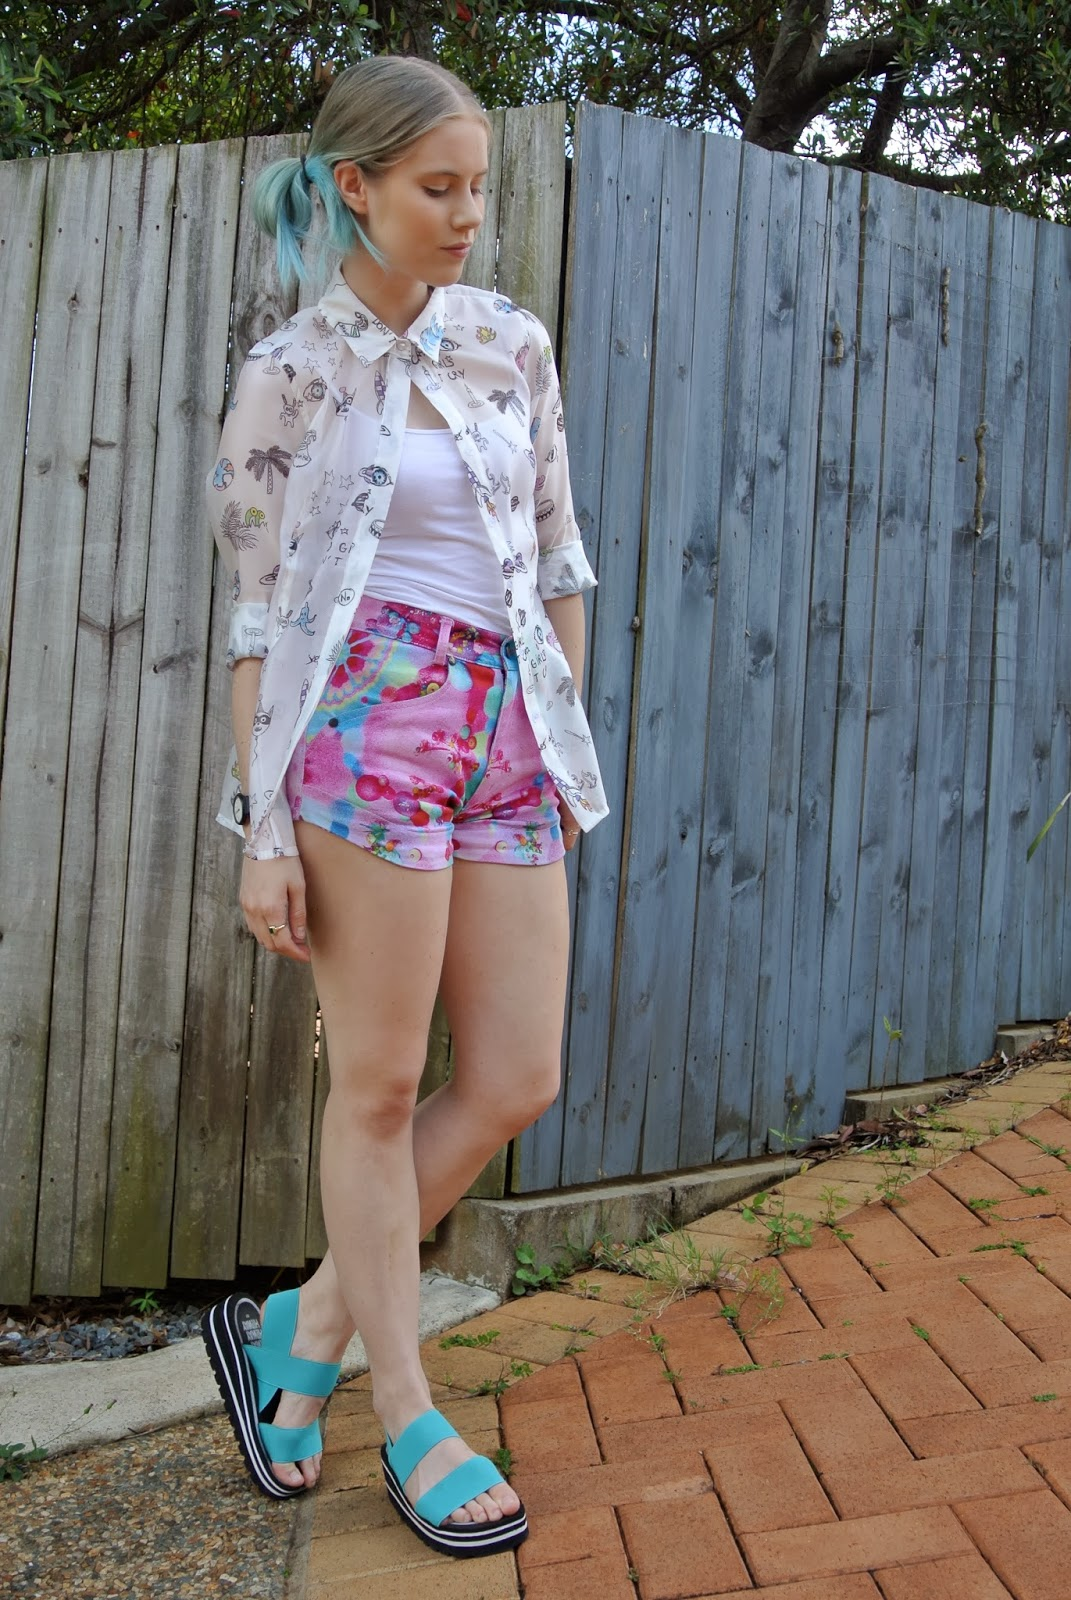 outsideiscolours, outside is colours, Pip O'Sullivan, fashion blog, OOTD, fashion blogger outfit, HI!WAY sandals, foam flatforms, foam and elastic sandals, romance was born fantasy shorts, pip and pop print, rainbow mandala shorts, frontrowshop cartoon top, front row shop white cartoon shirt, OOTD, blogger outfit, blogger wearing, fashion blogger blue hair, turquoise hair, dip dye, blue ombre